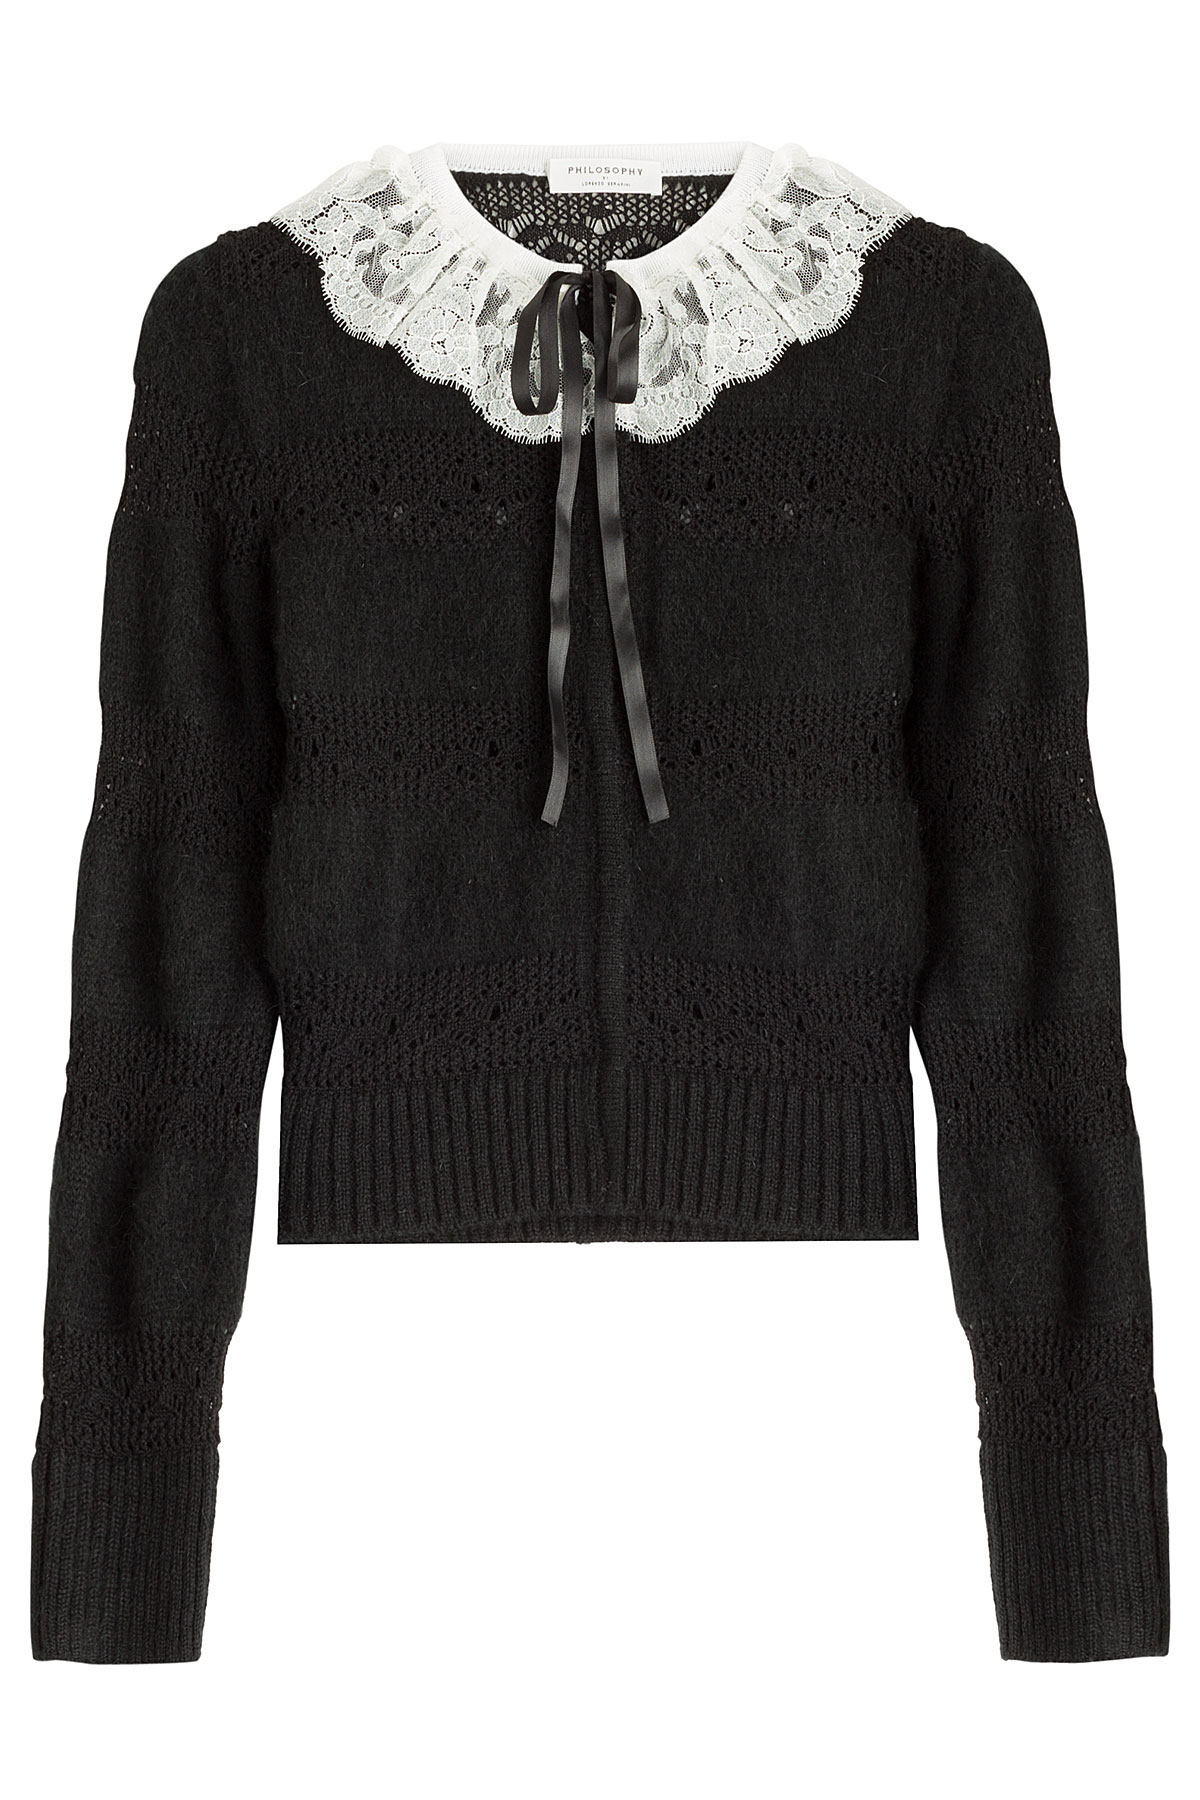 Philosophy di lorenzo serafini Knit Cardigan With Lace Collar ...